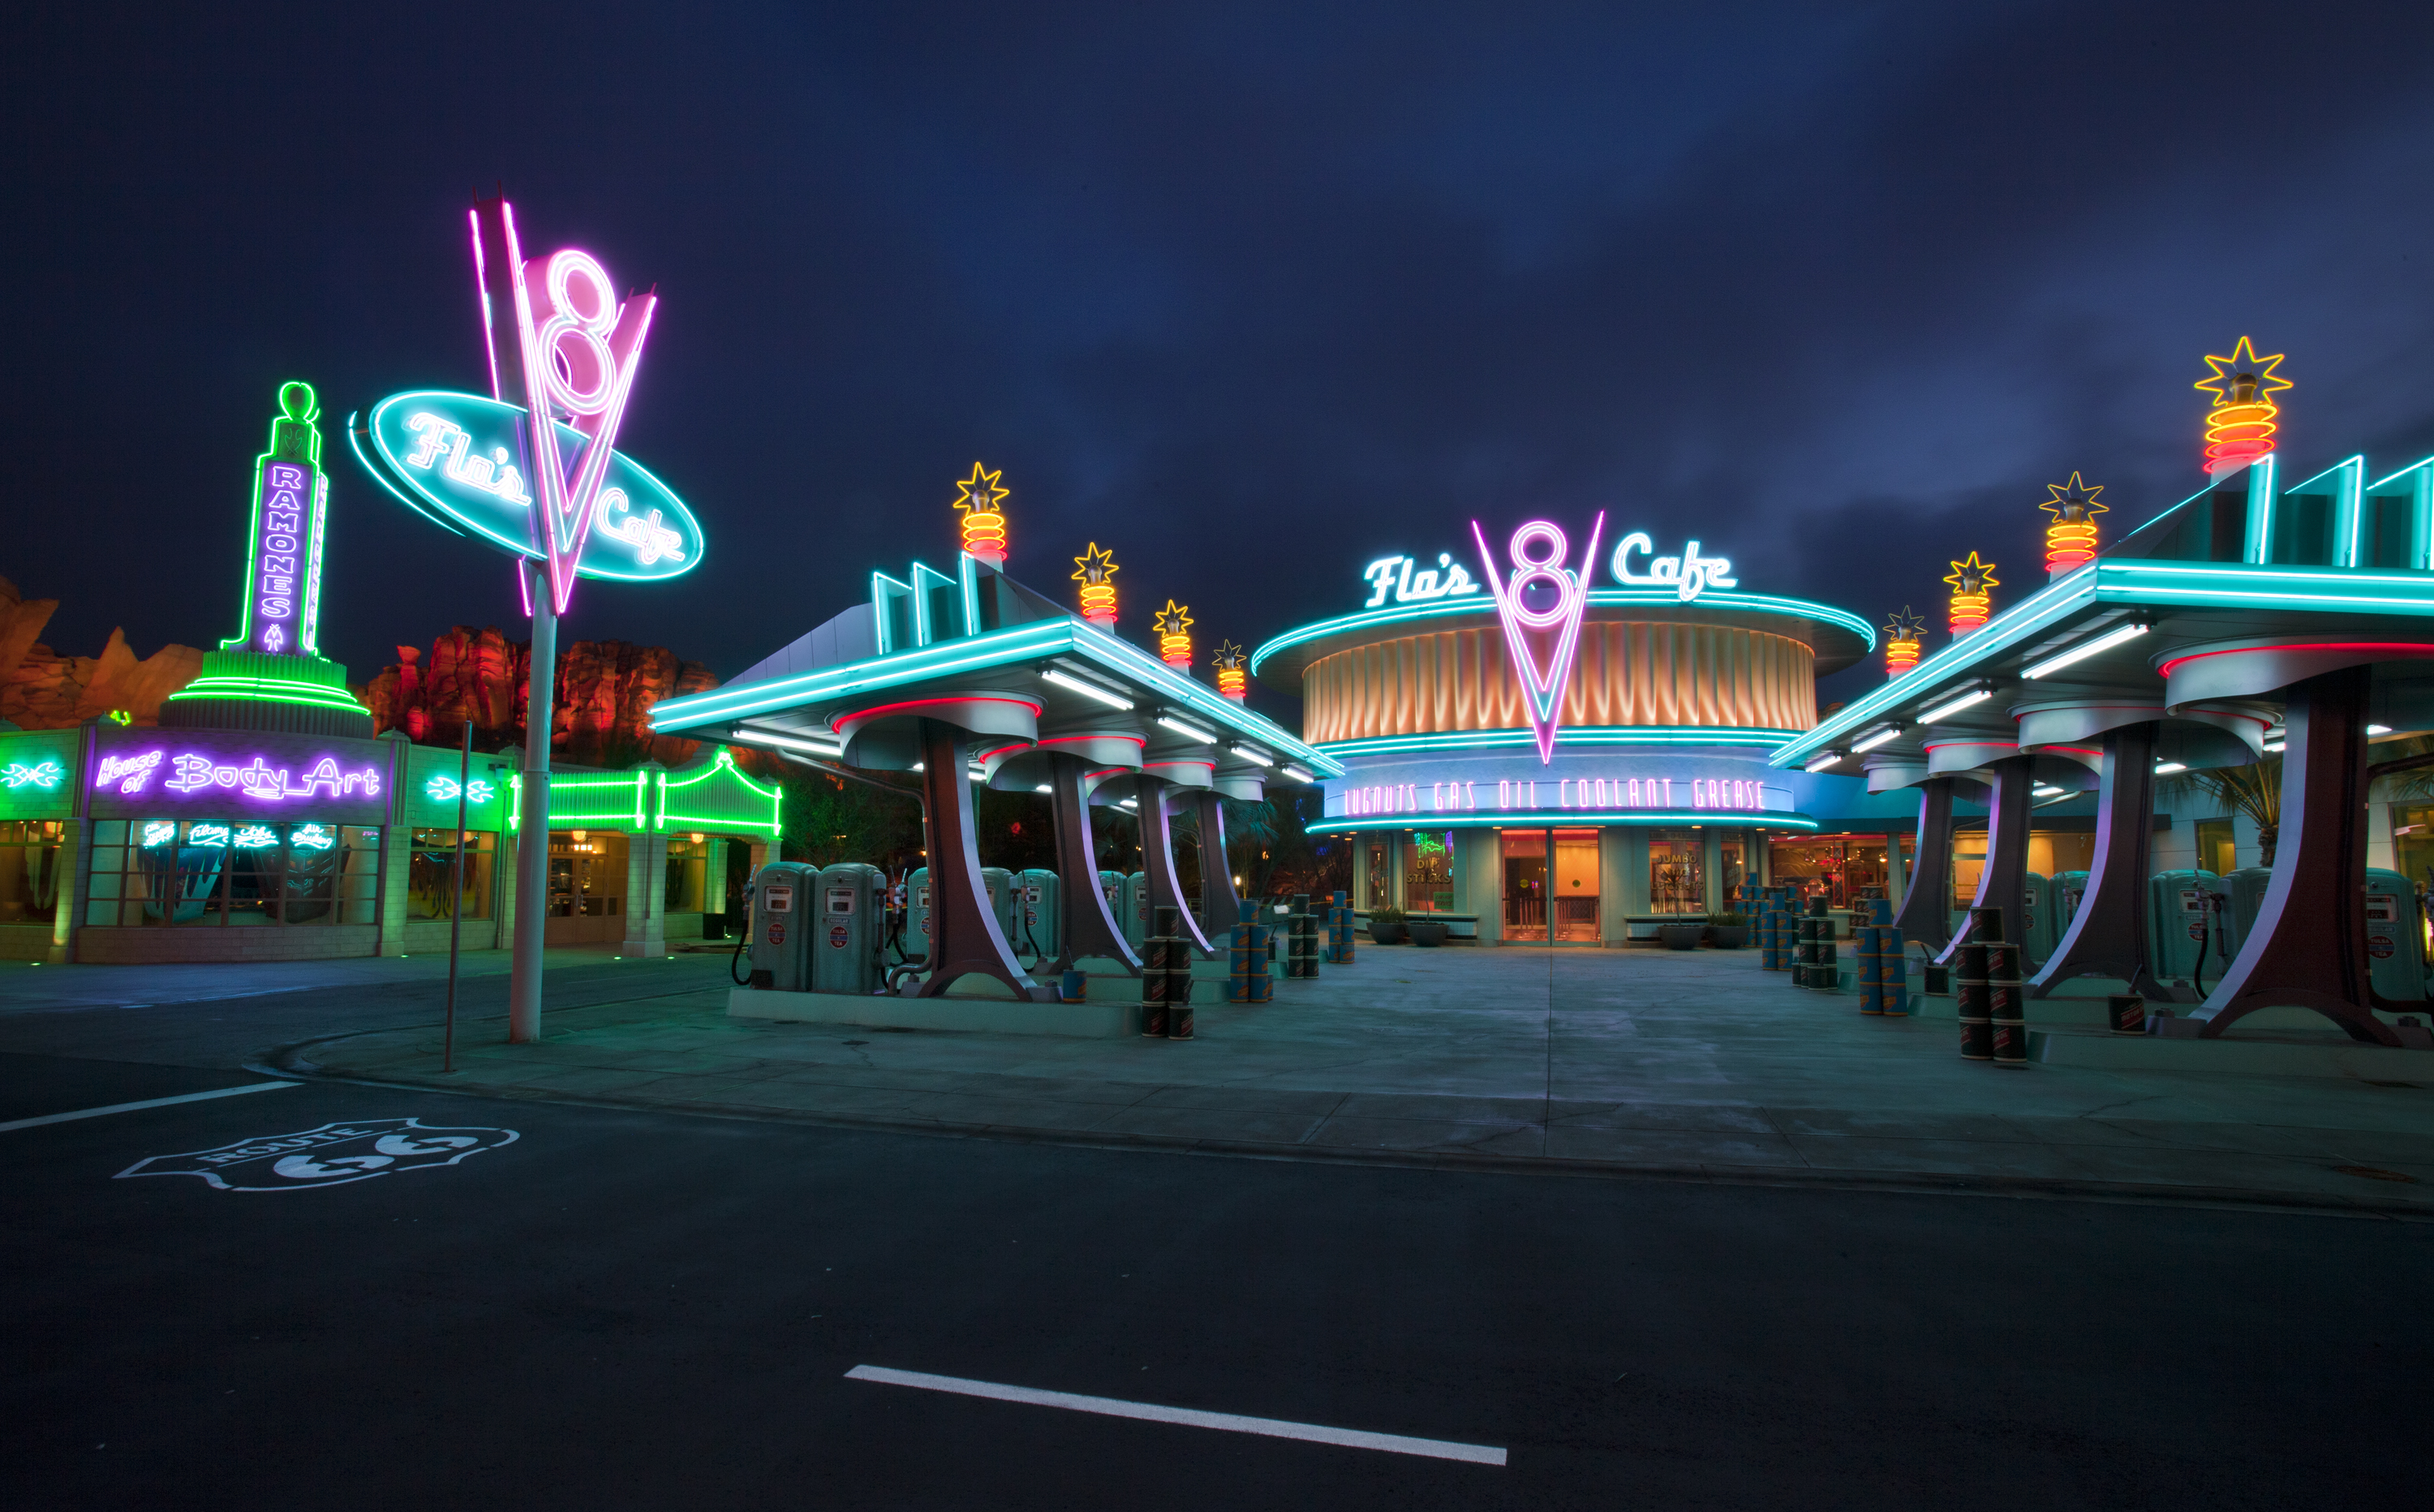 Best Disneyland breakfast featured by top US Disney blogger, Marcie and the Mouse: Flo's V8 Cafe is a great place for breakfast in Cars Land at Disney California Adventure